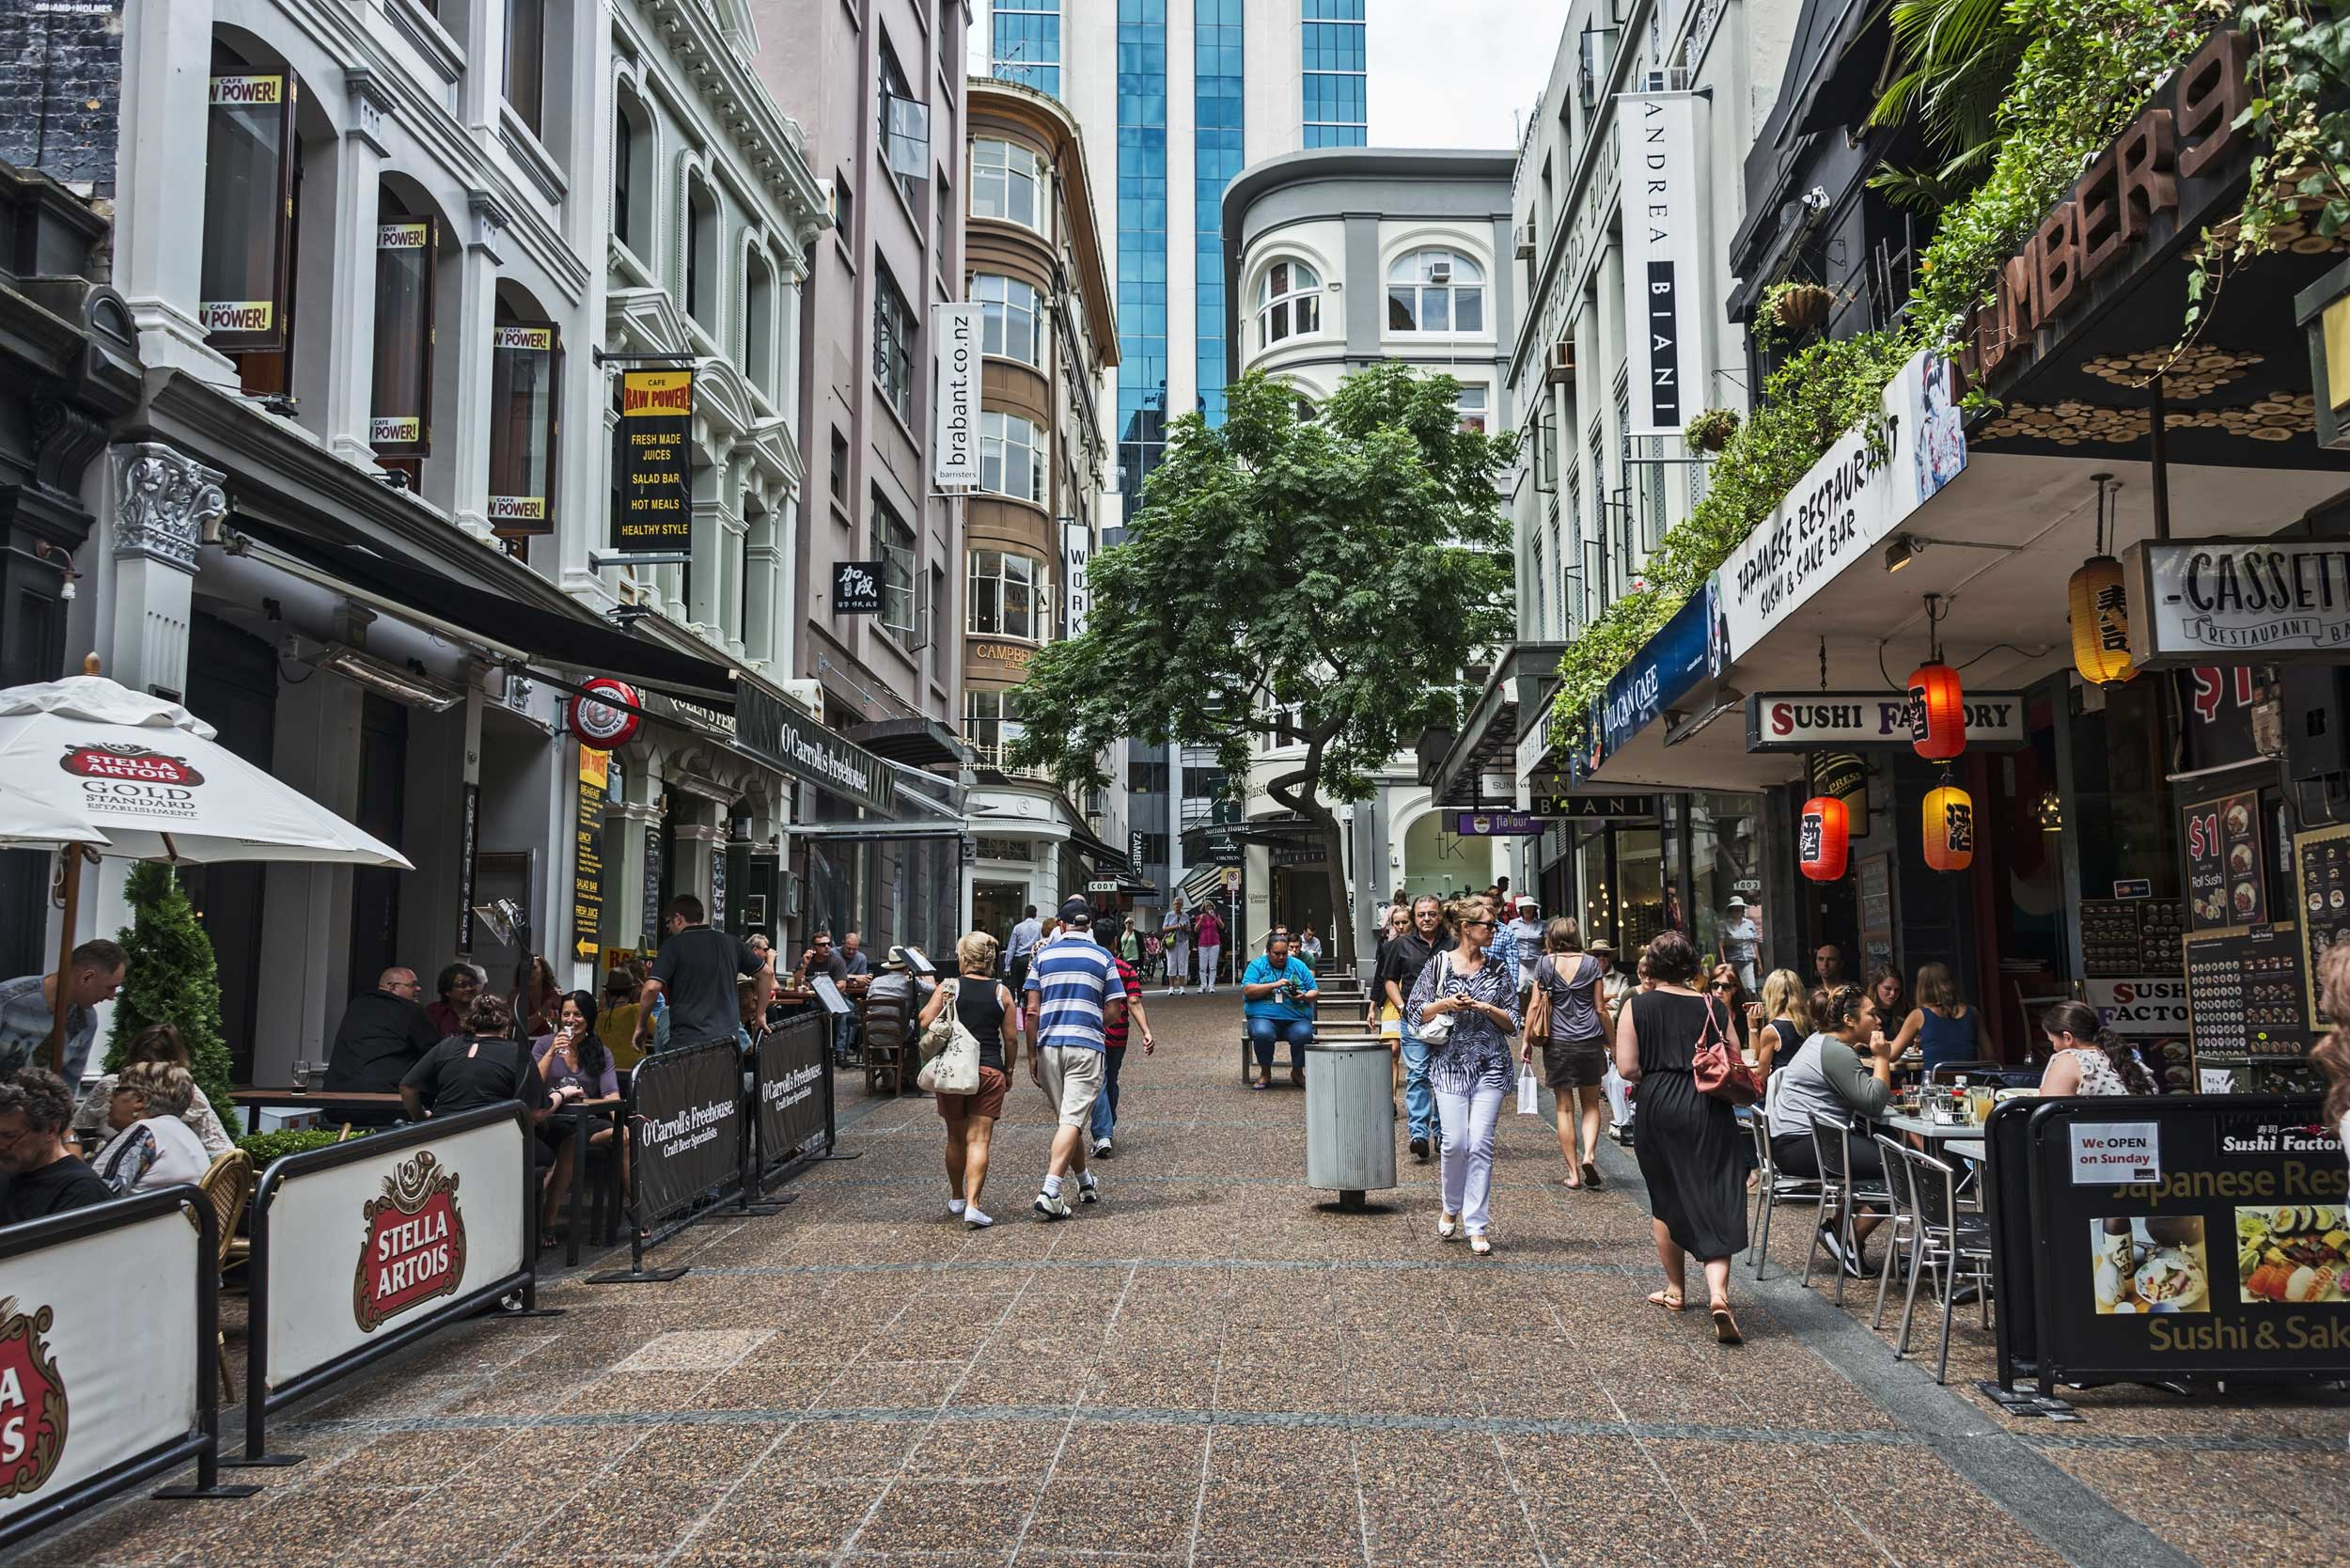 A lane with shops, bars and cafes in Auckland